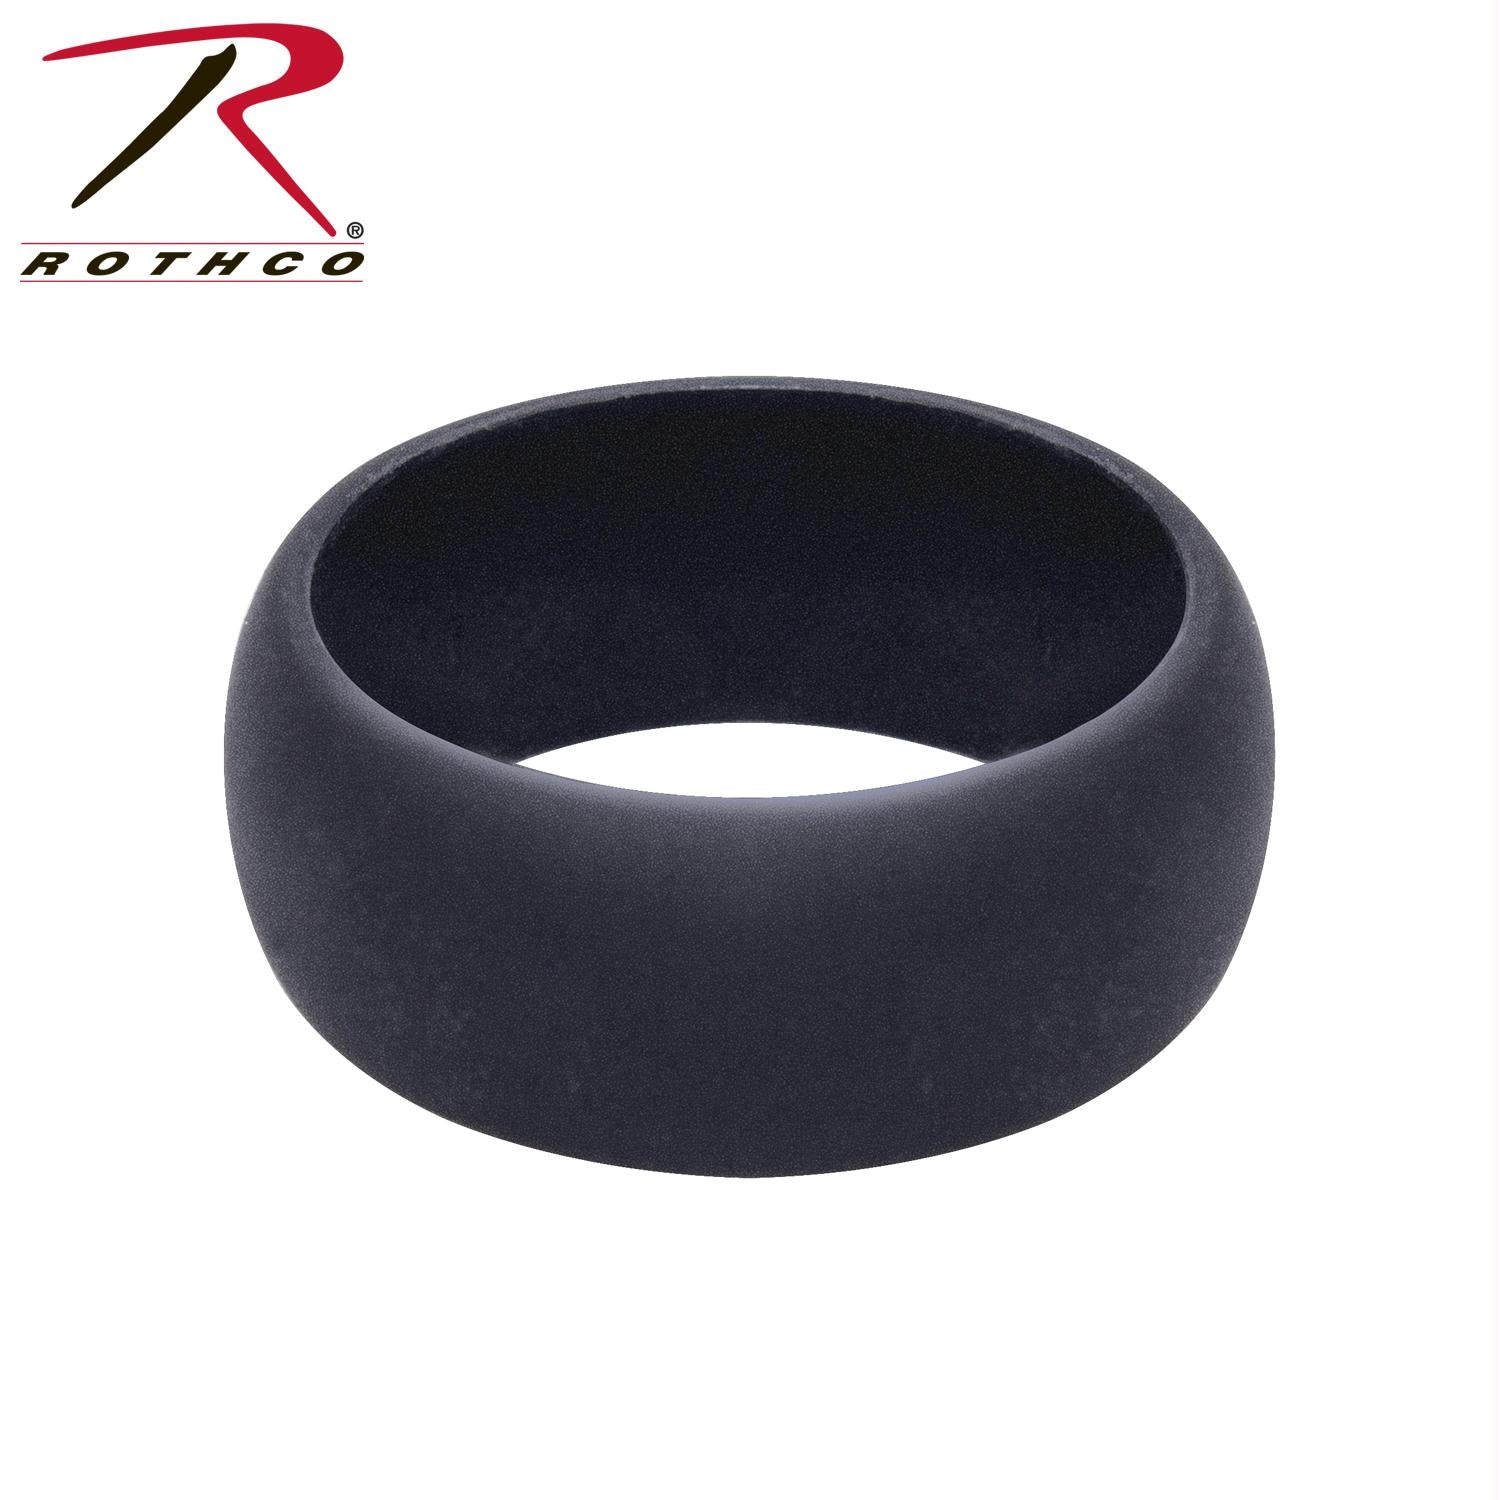 Rothco Silicone Ring - Ring Size 8 (2 1/4 inches)